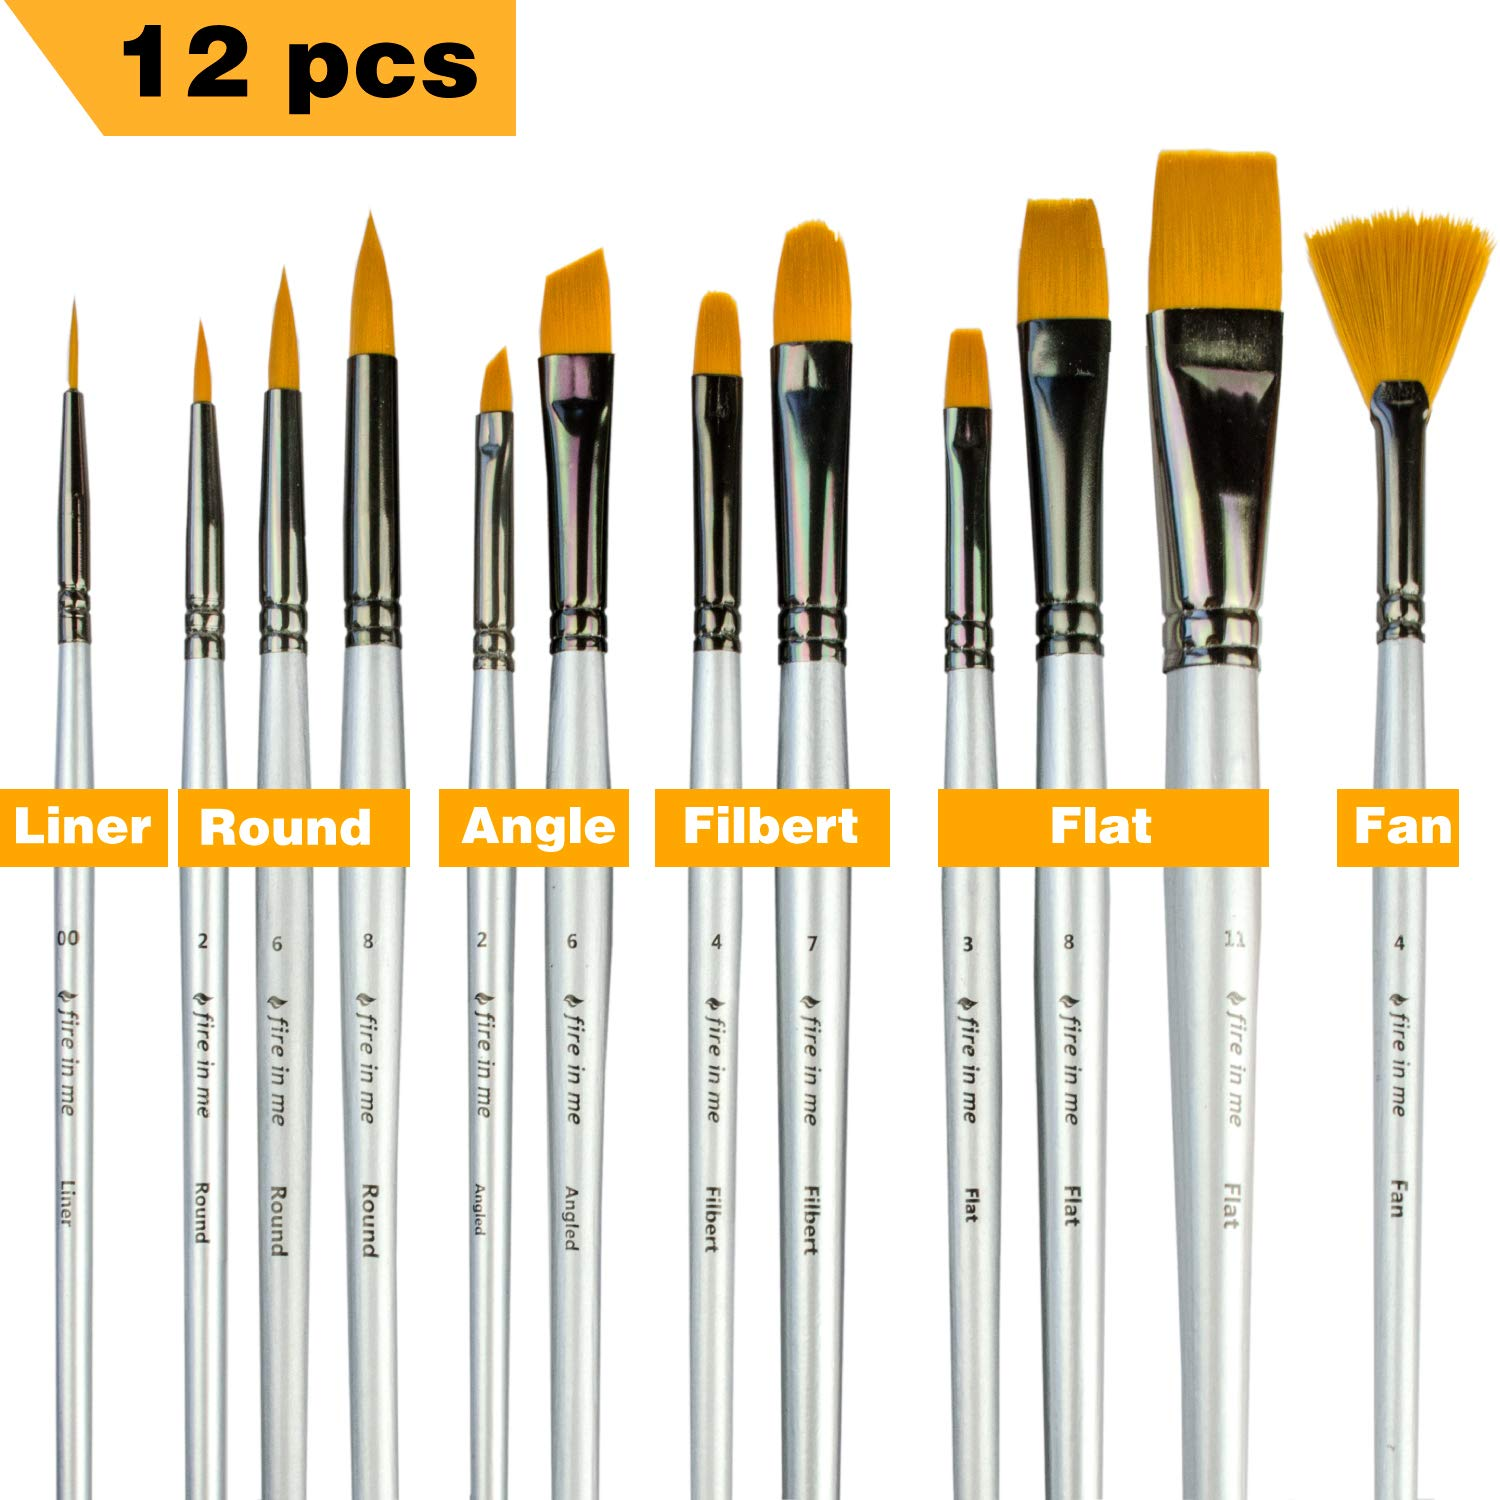 Paint Brushes for Acrylic Painting Watercolor Oil - Body and Face Paint Brushes. Best Professional Art Supplies Painting Brush Set of 12 pcs for Adults and Kids